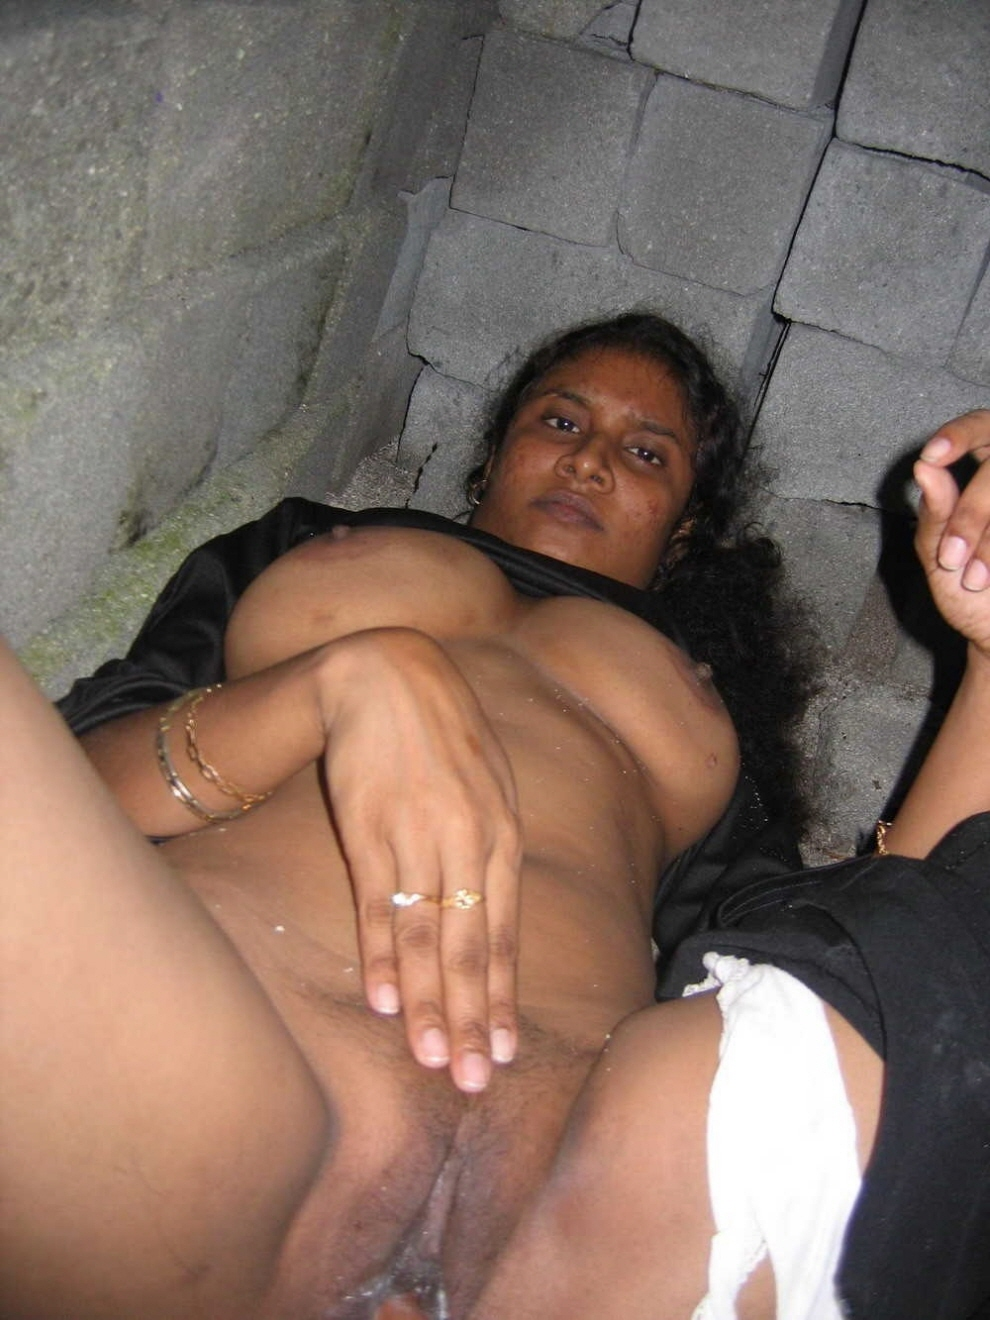 Have Hd indian sex desi girls nude have